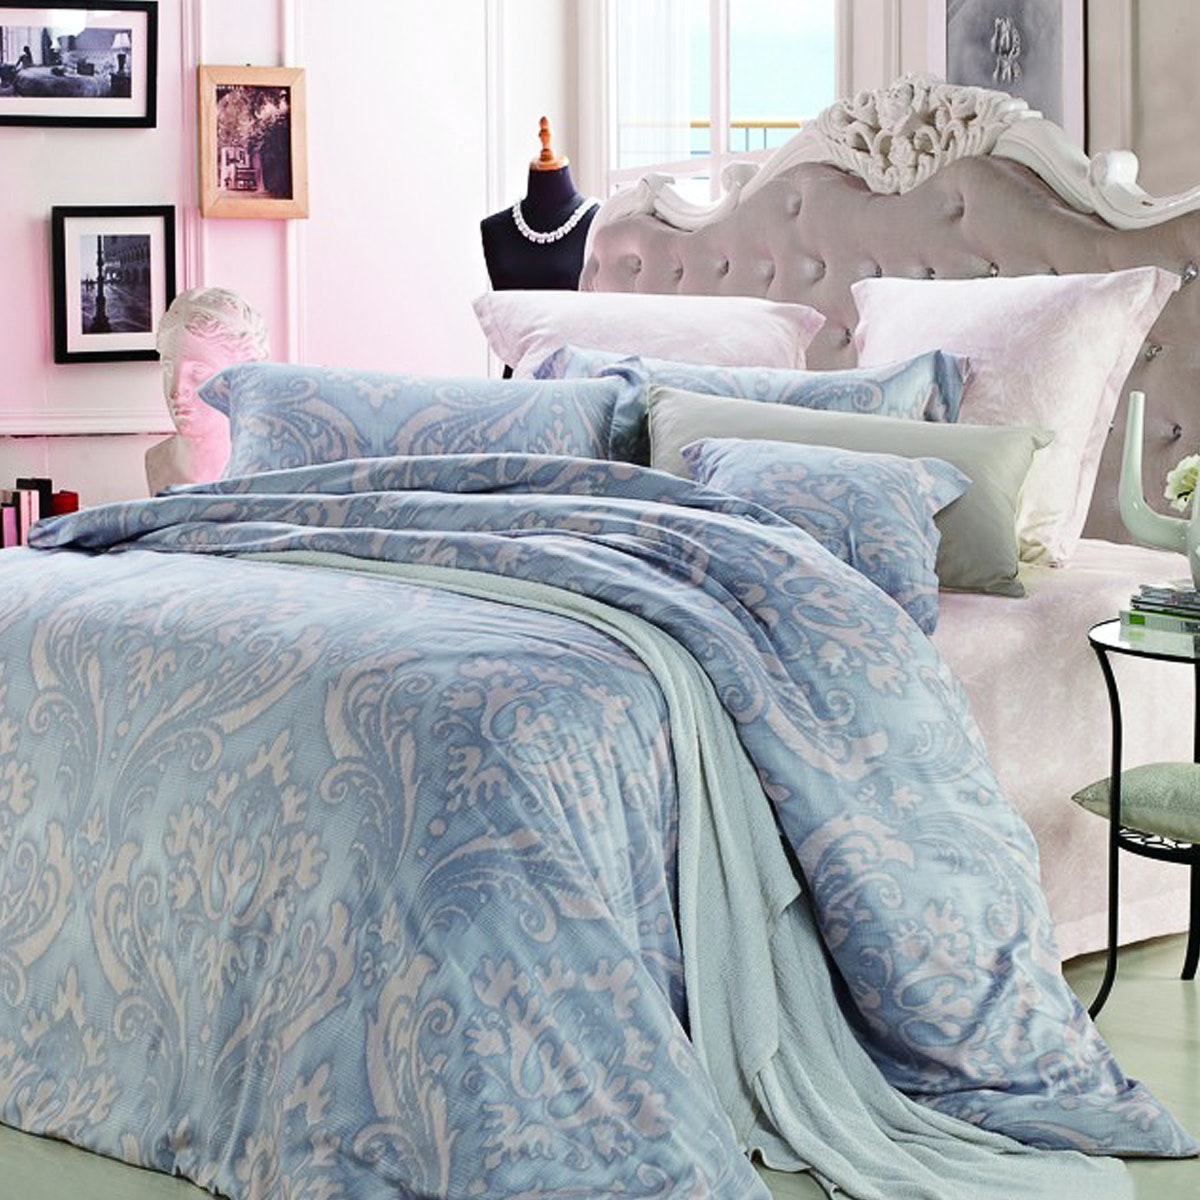 Palmerhaus Set Bedcover Verve Blue Bedding Set 200x200x40 cm